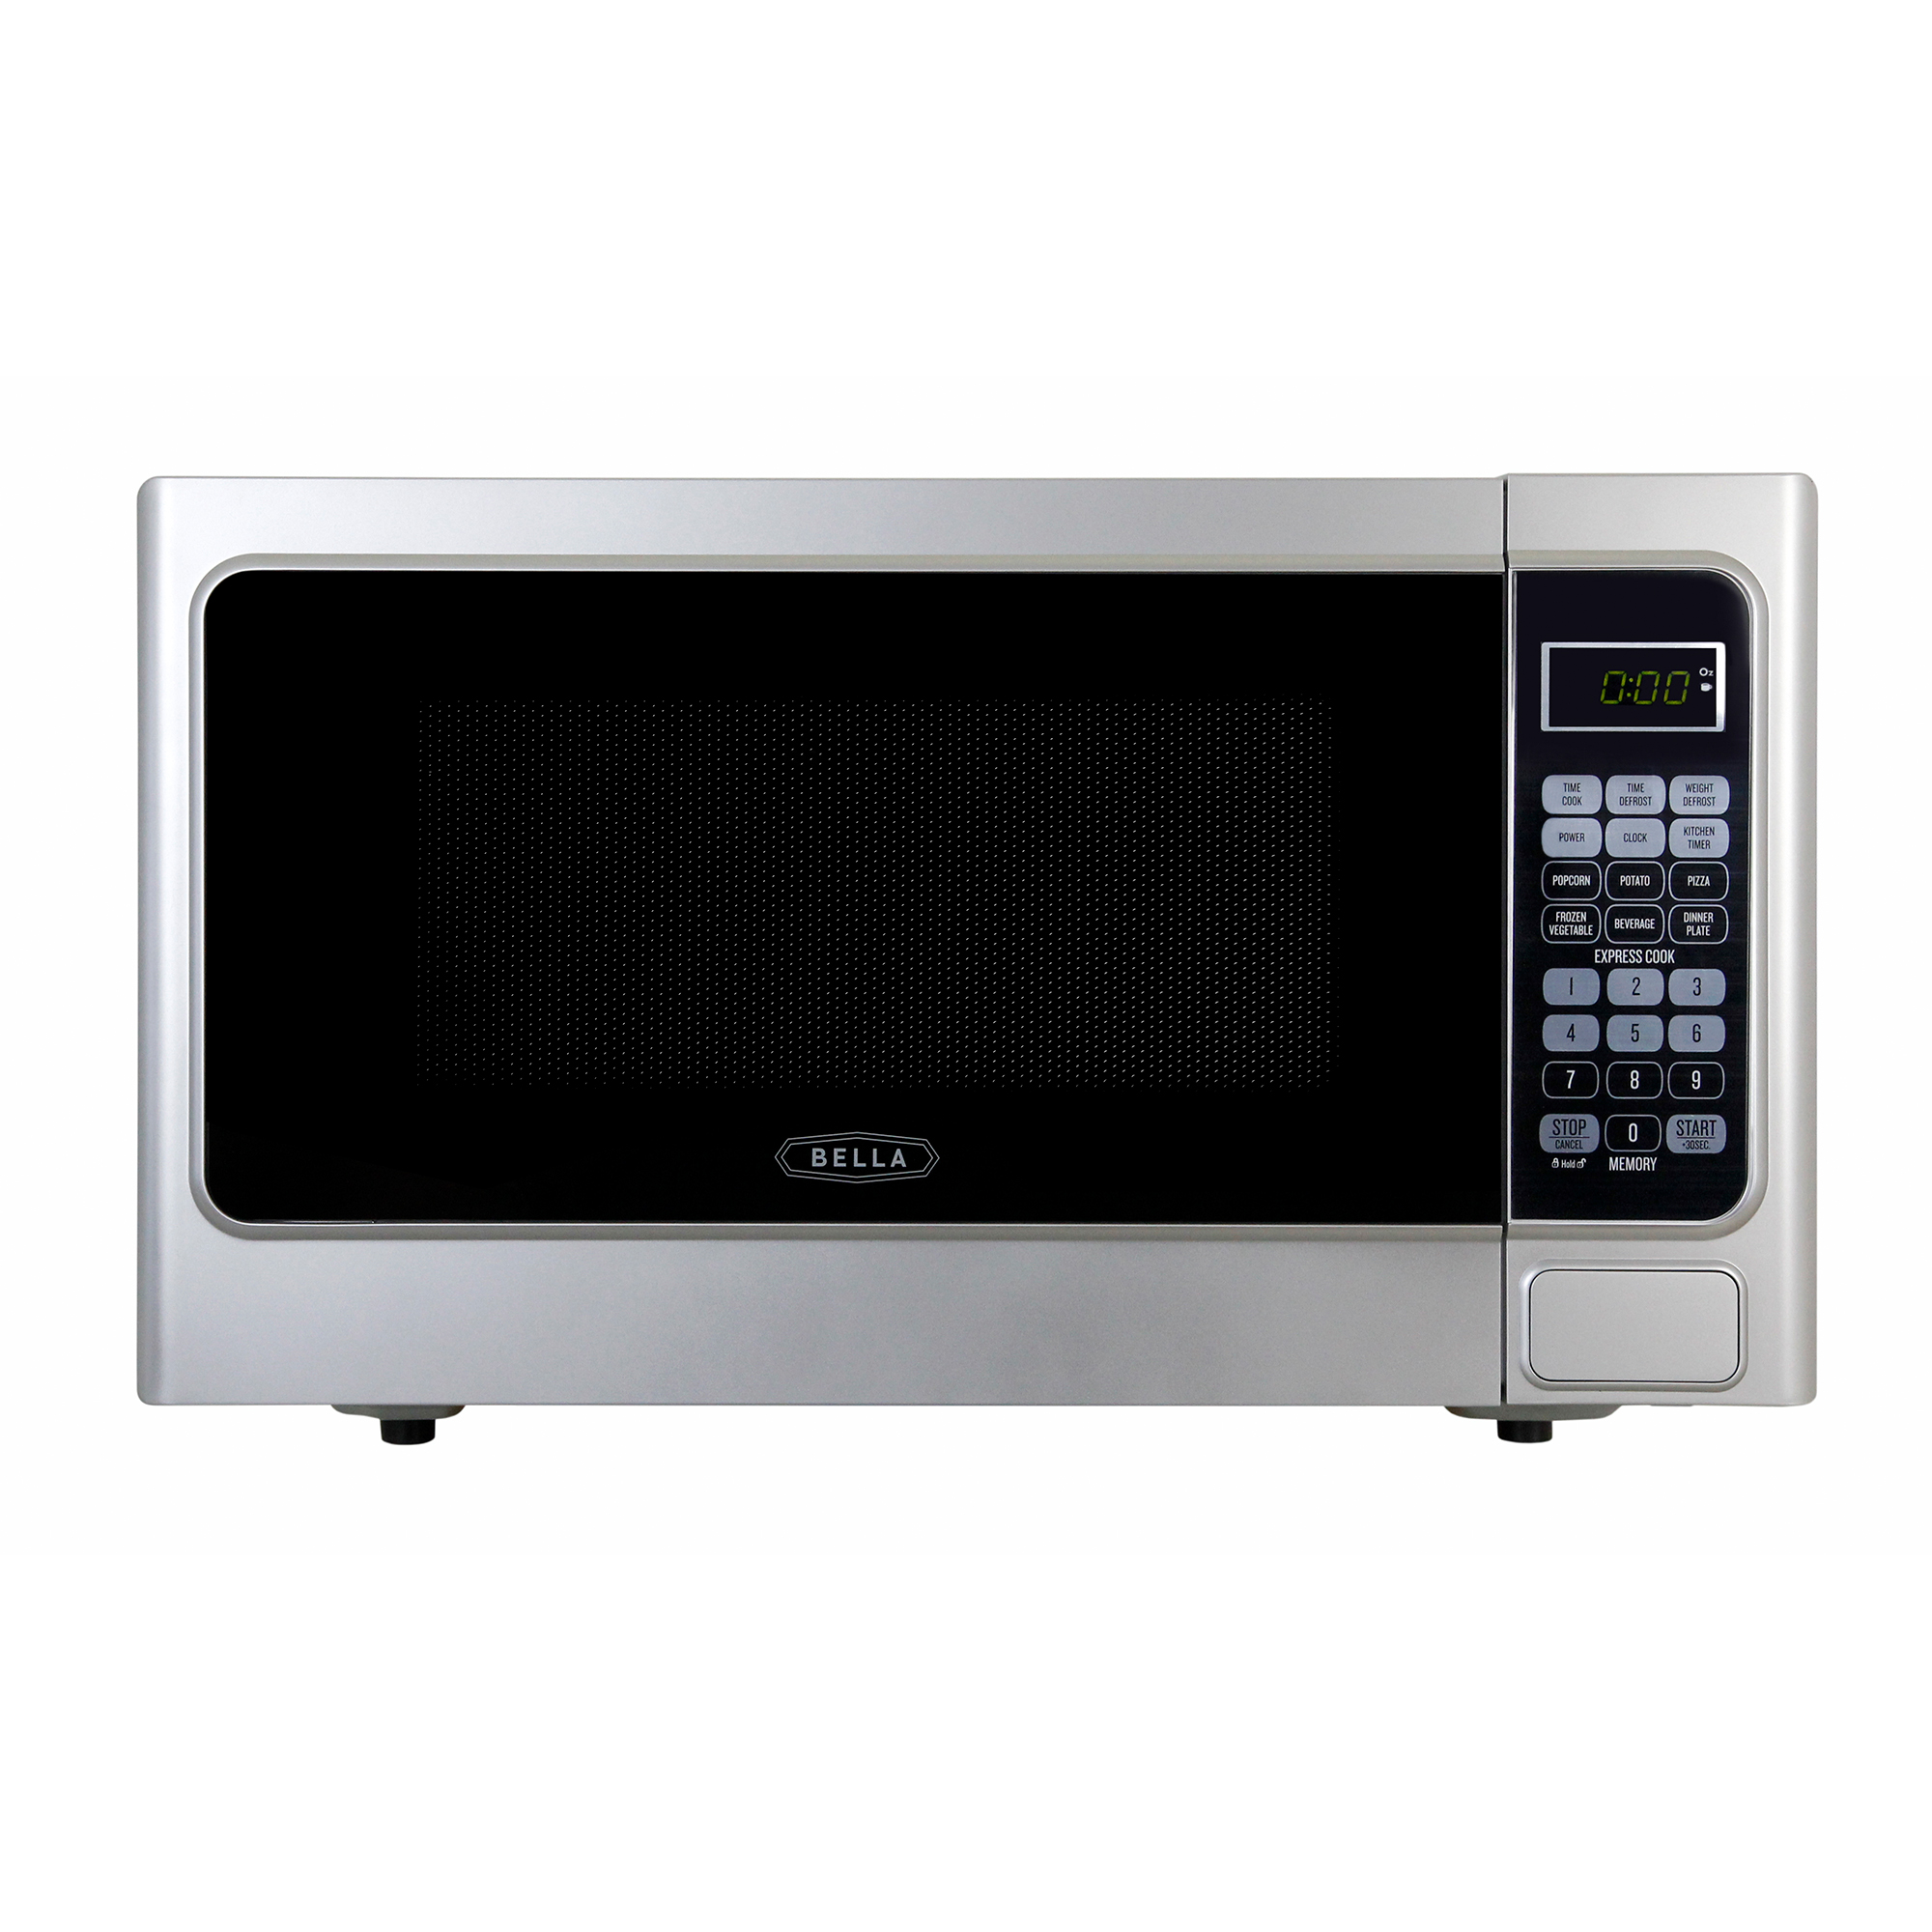 Bella 1.1 Cubic Foot 1000 Watt Microwave Oven in Platinum Silver